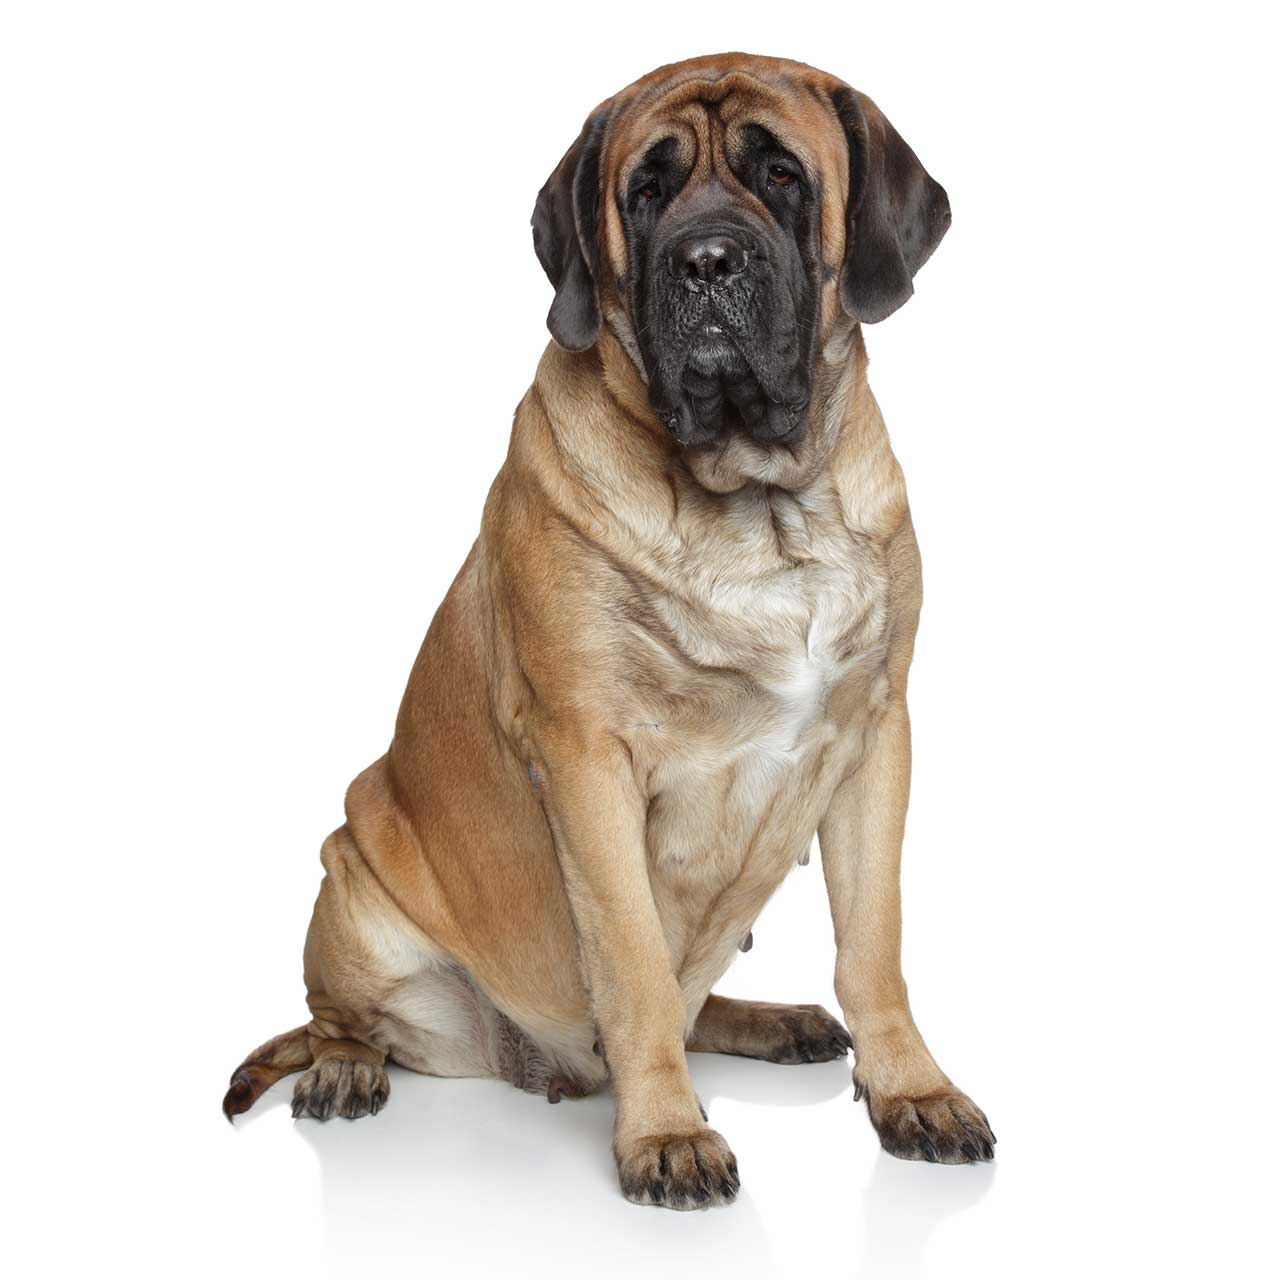 Mastiff Dog Breed » Information, Pictures, & More